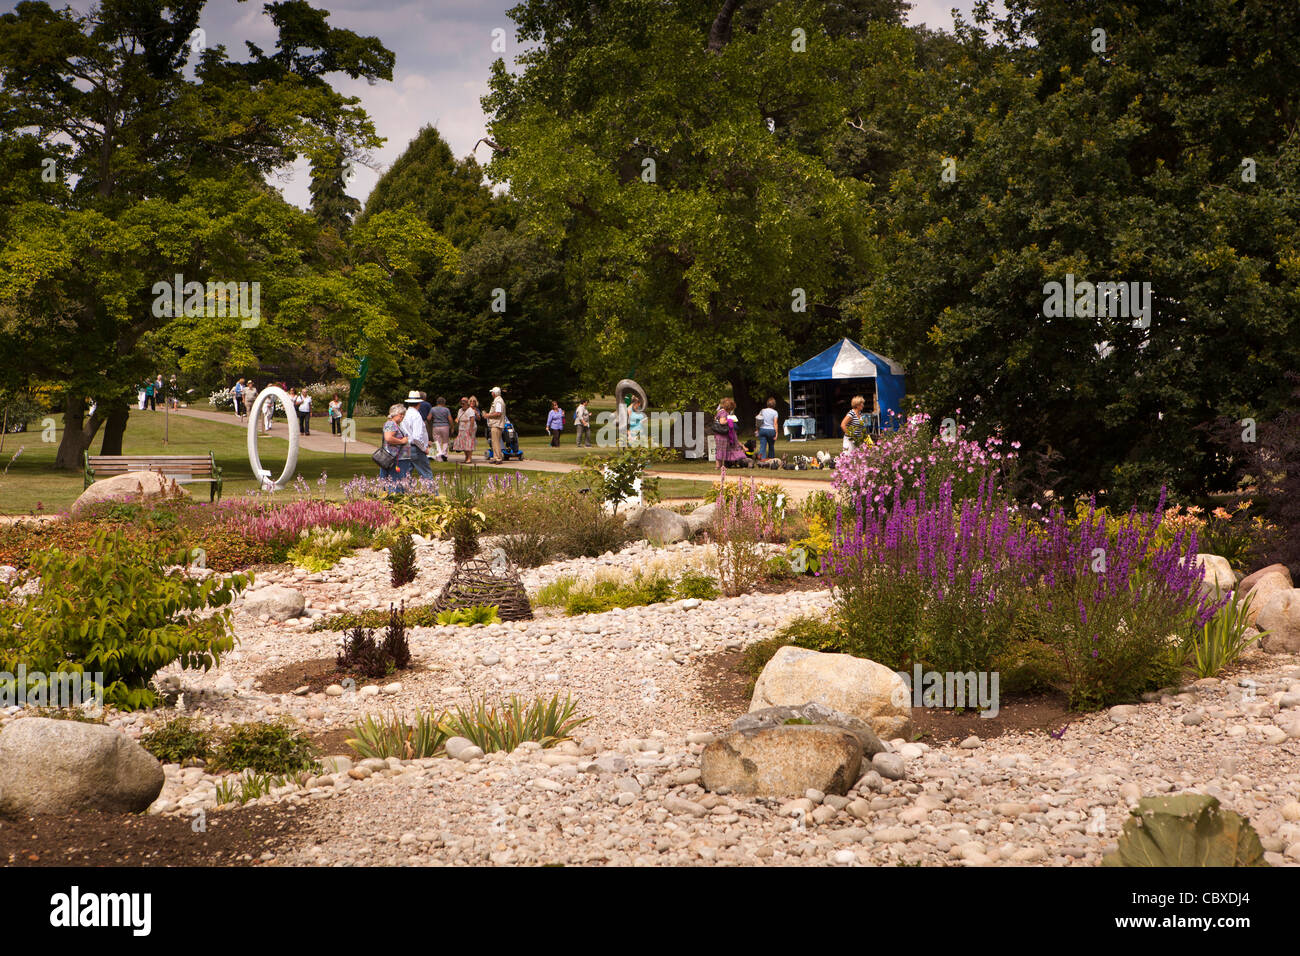 Woburn Abbey Garden Show Stock Photos & Woburn Abbey Garden Show ...